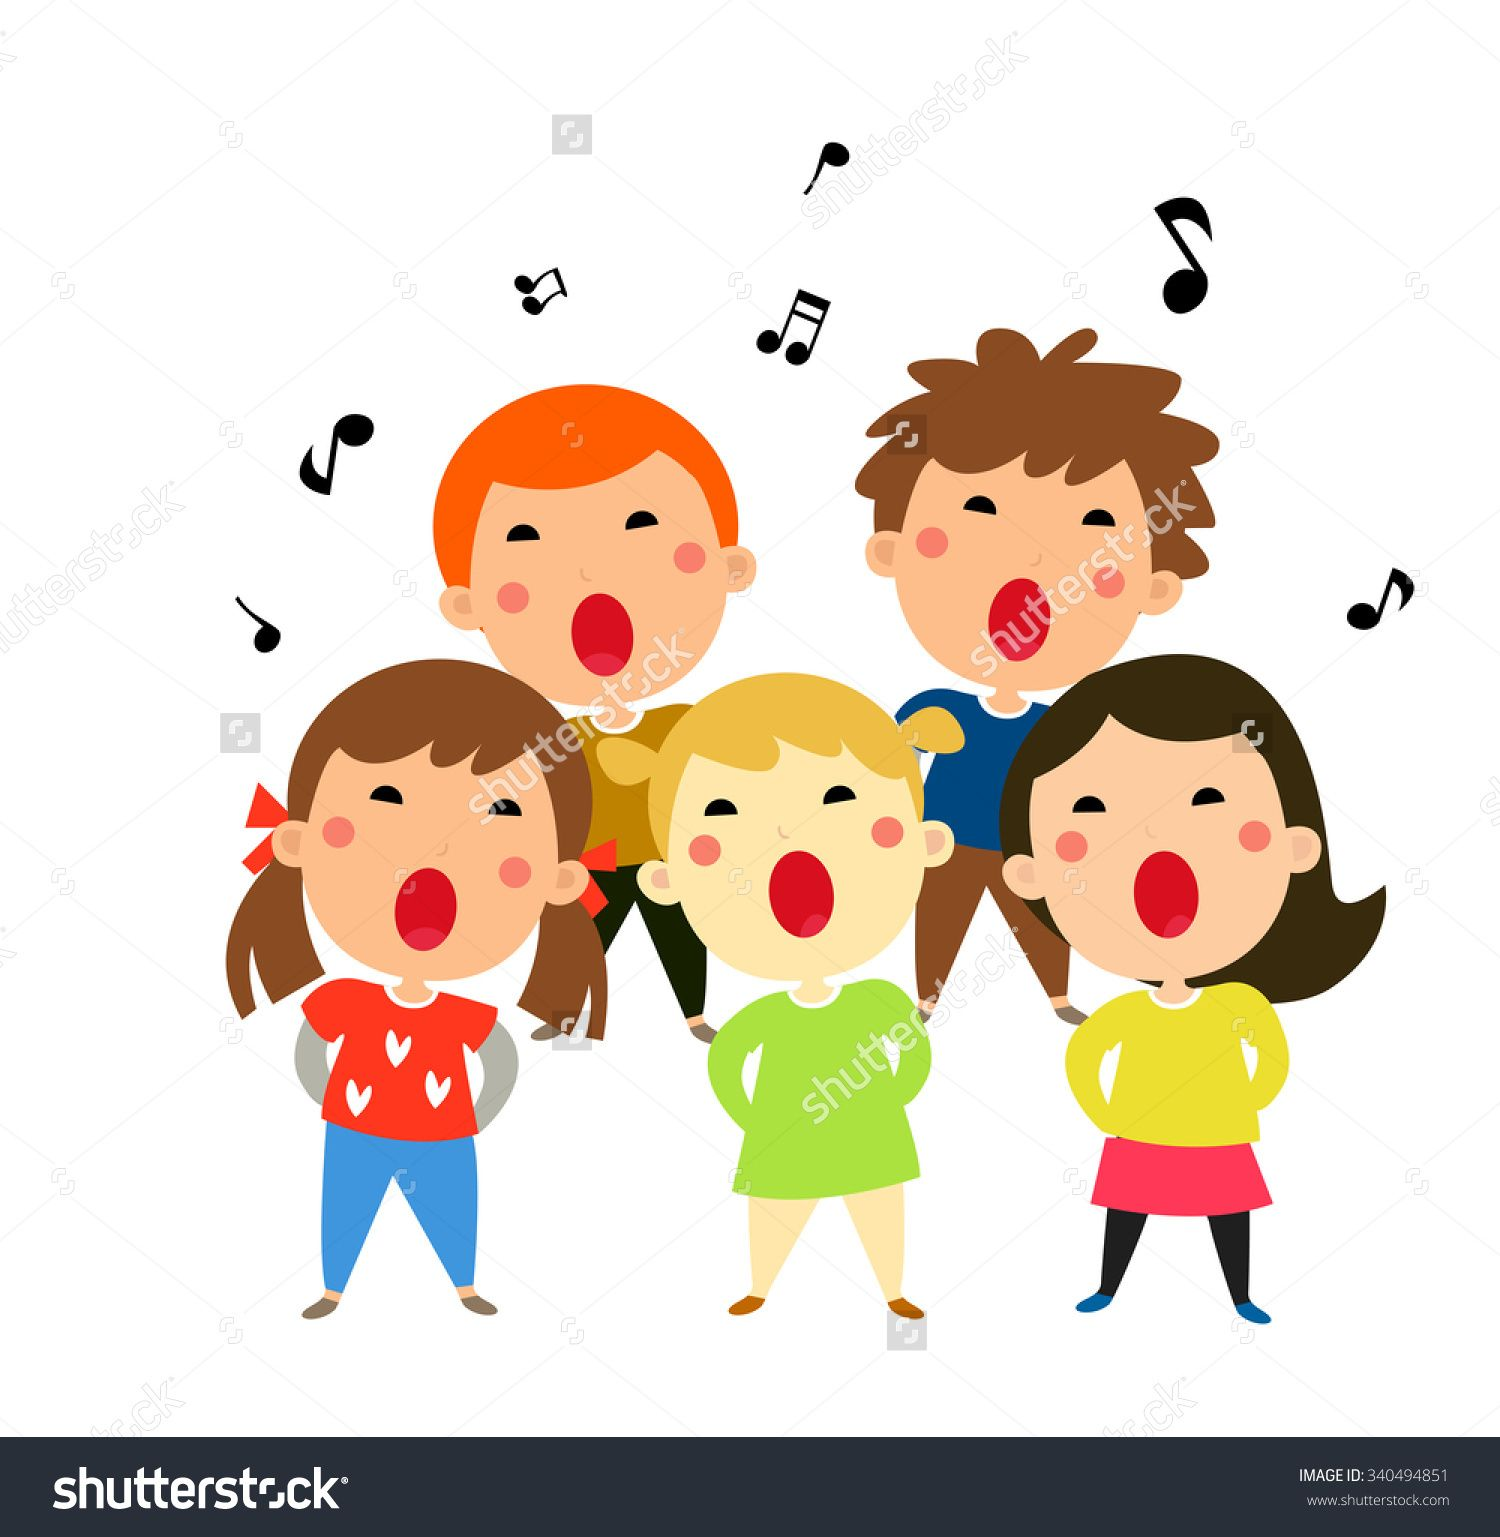 Clipart children sing together picture royalty free bible singing clip art for kids | Children Singing Christmas Carols ... picture royalty free